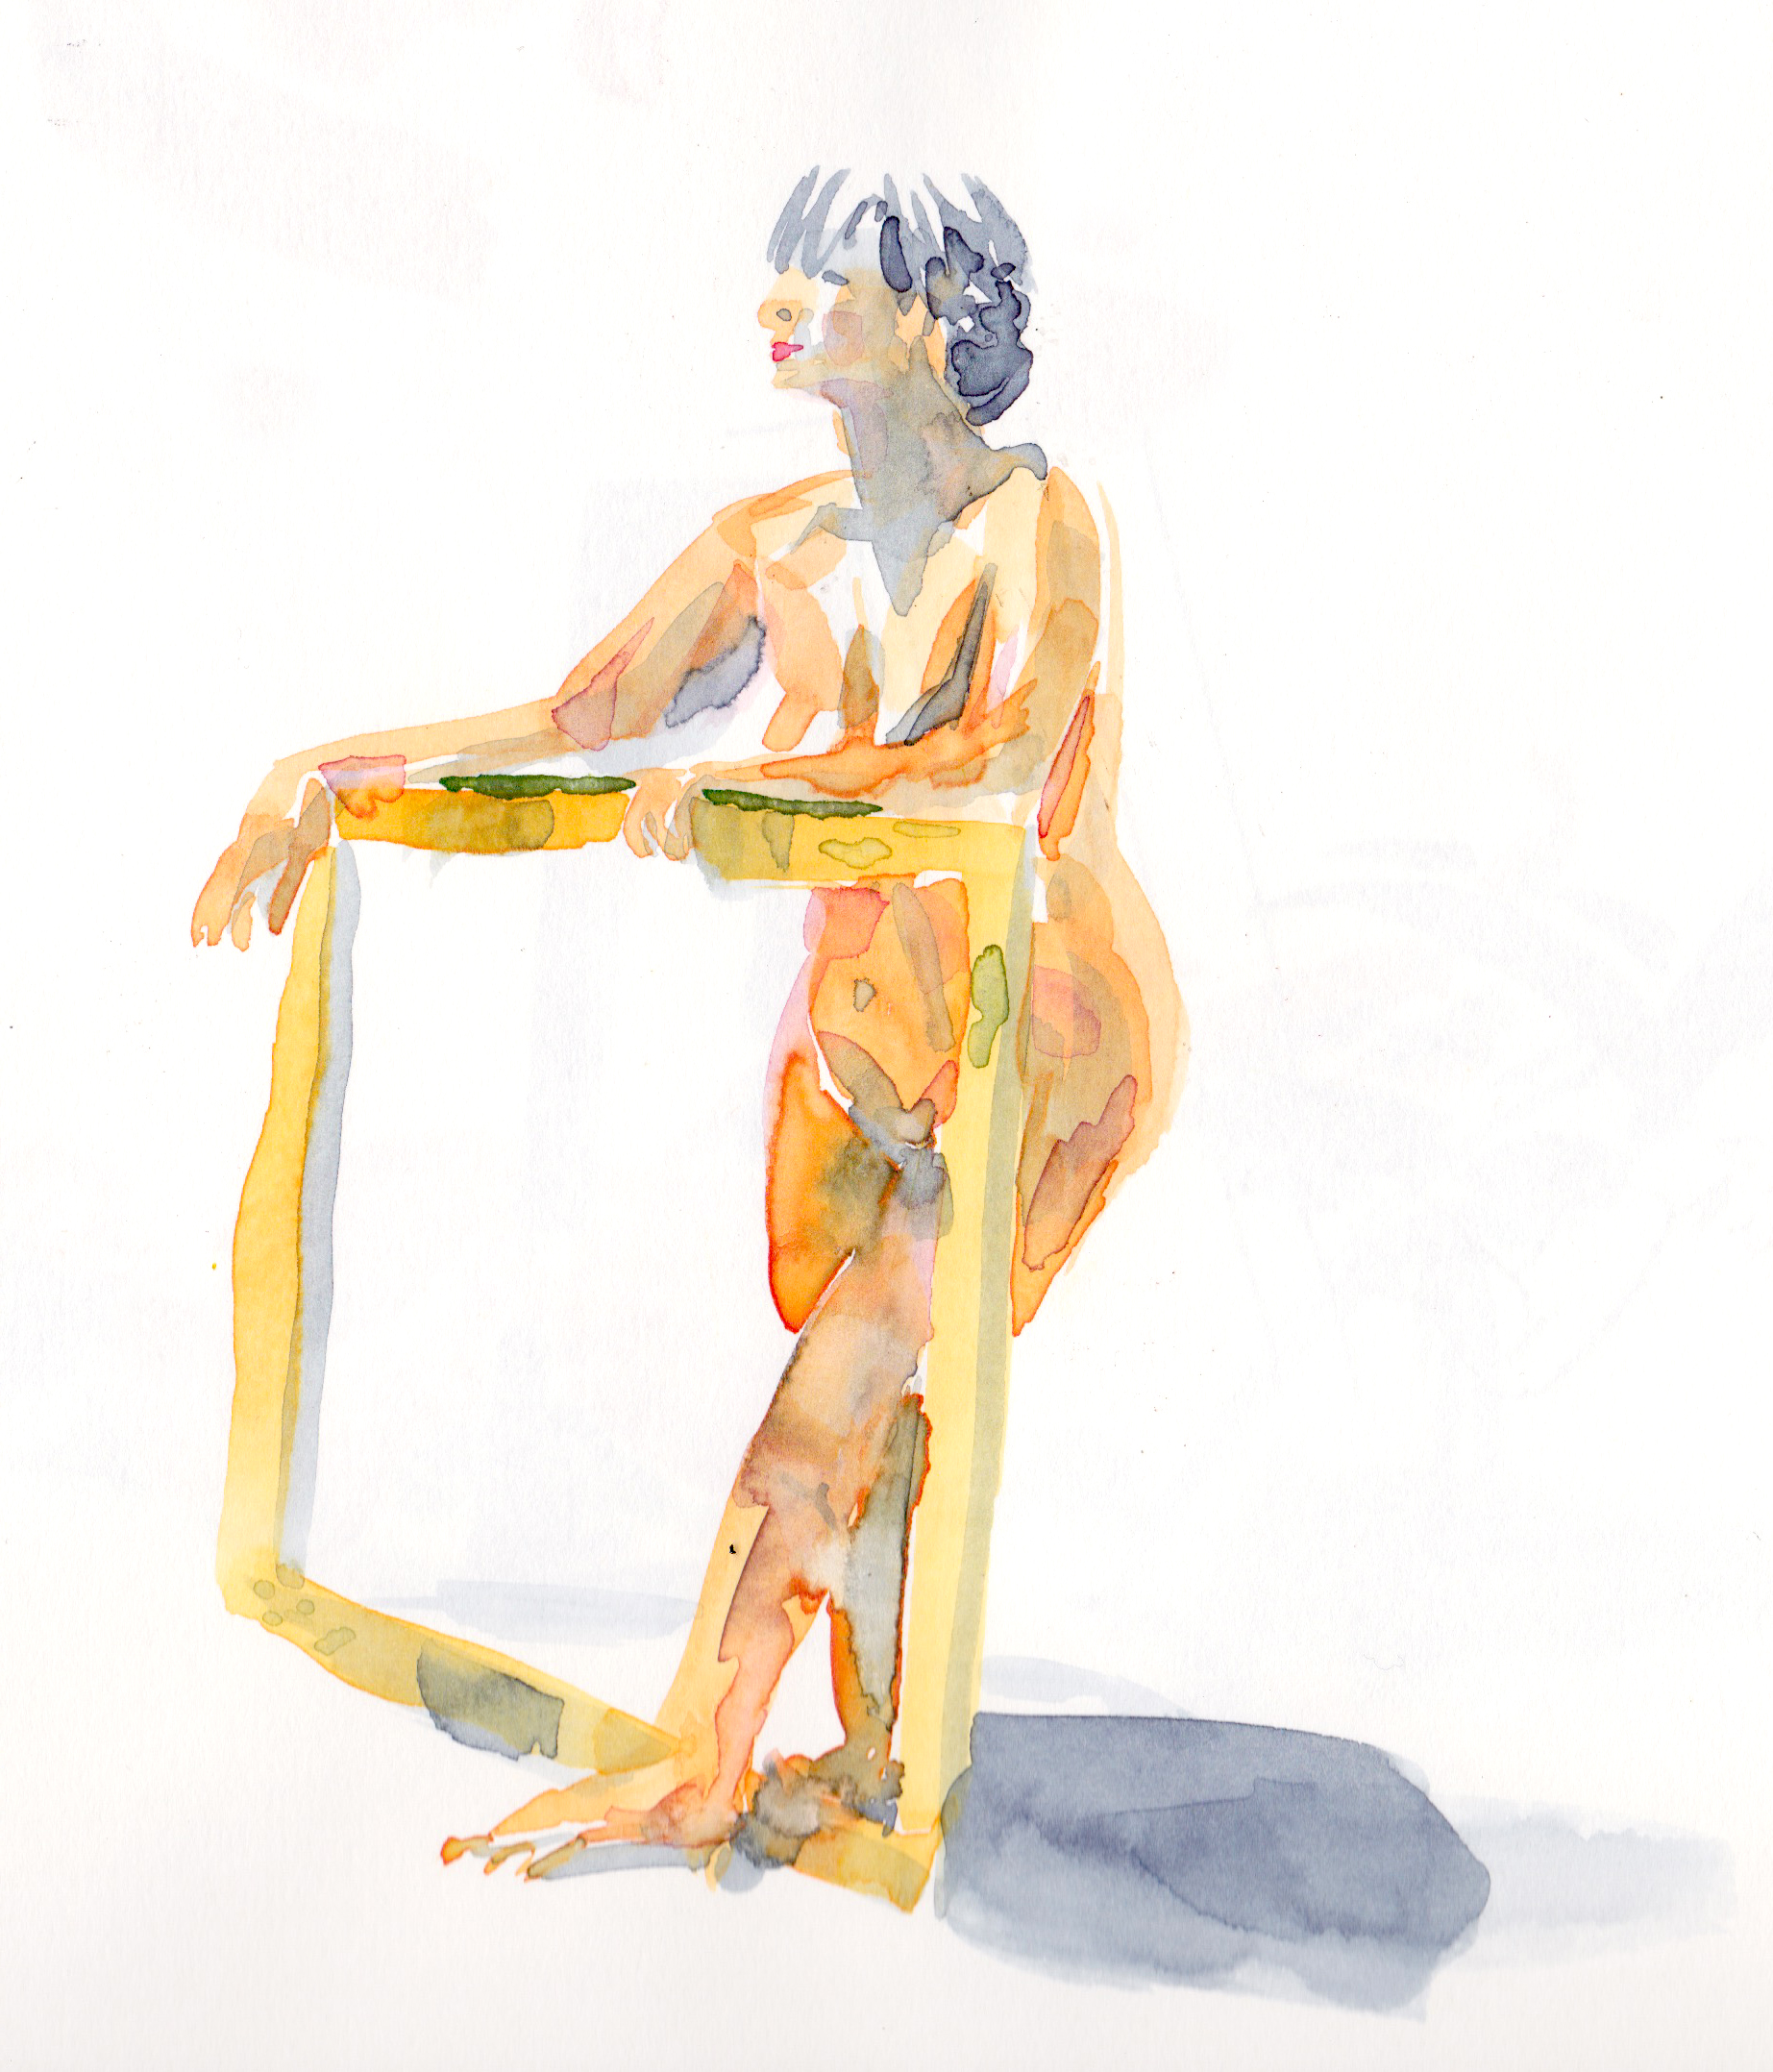 lifedrawing 00